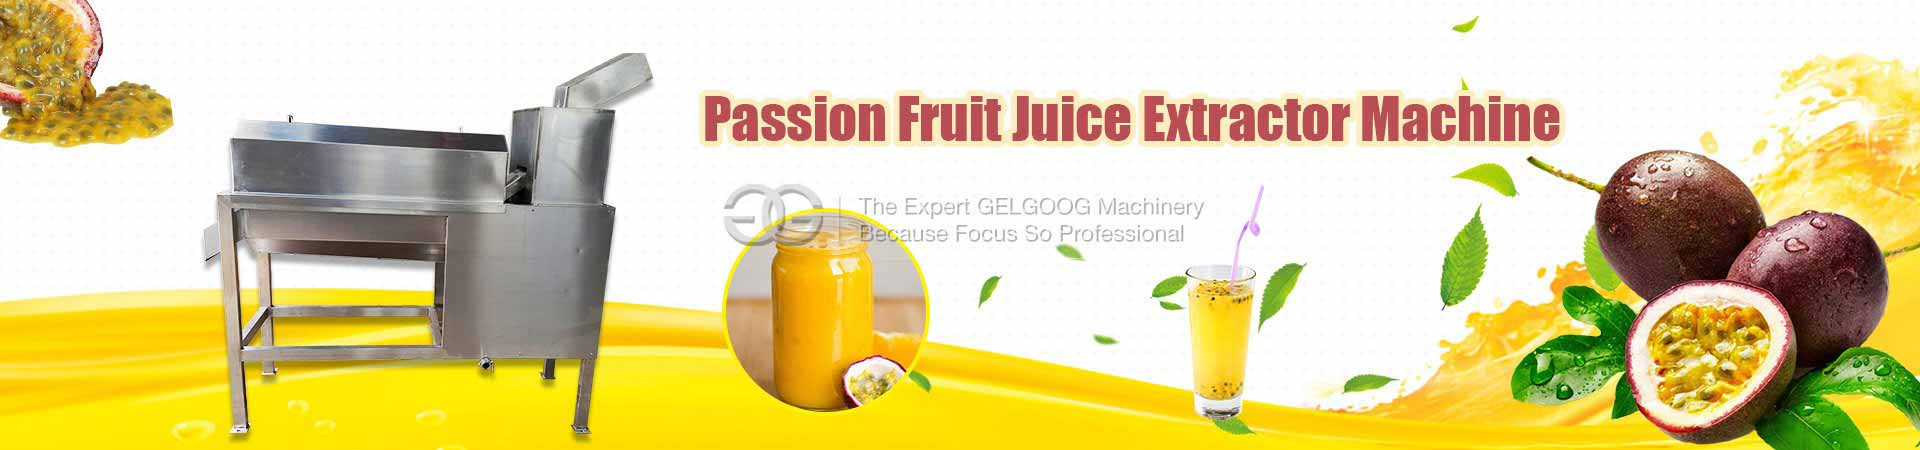 Passion Fruit Juice Extractor M